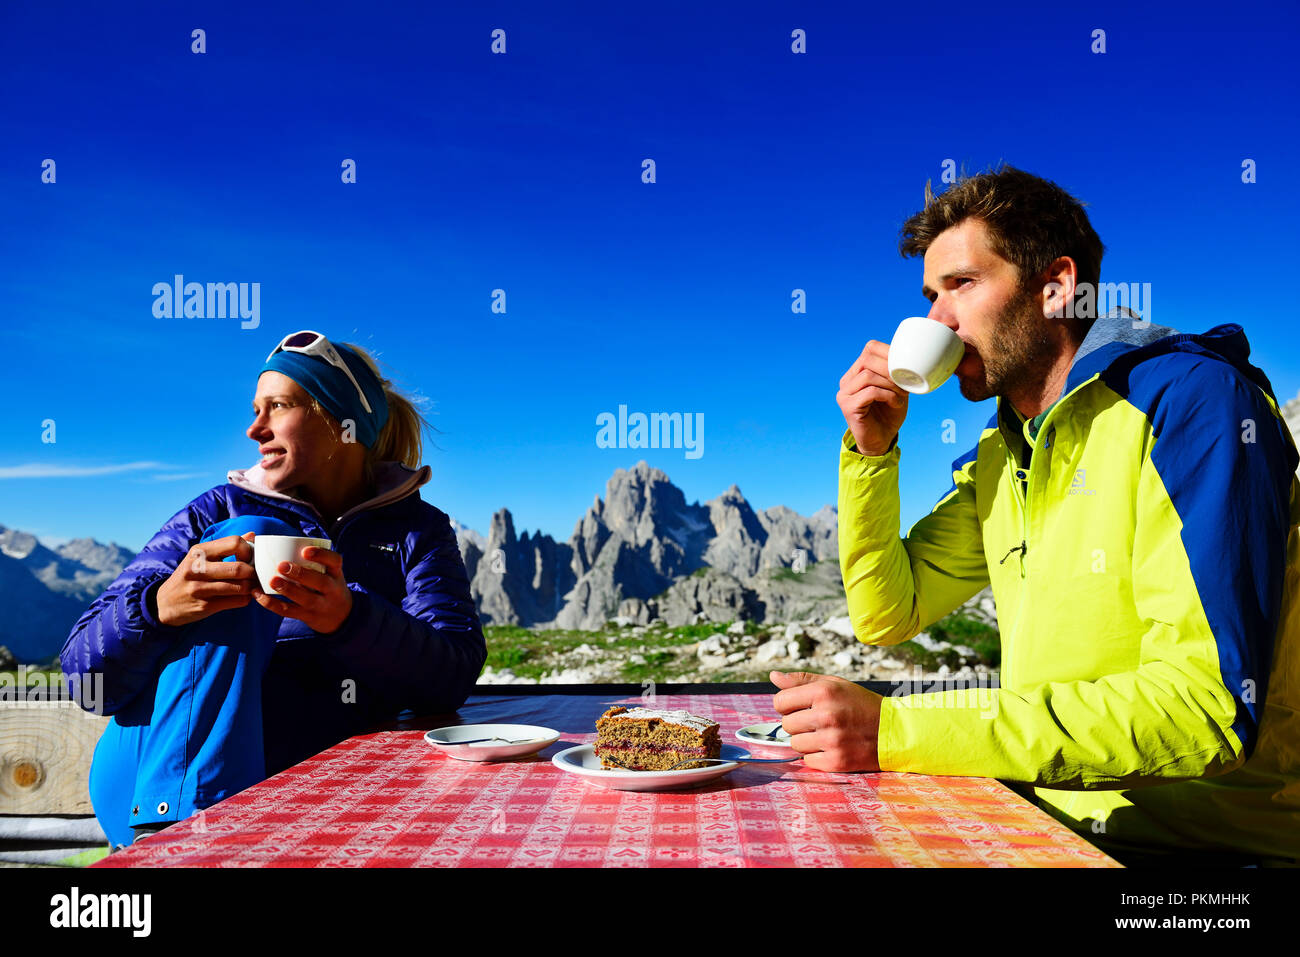 Hikers on the south side of the Three Peaks pause in front of the Lavaredo Hut, Sexten Dolomites, Alta Pusteria, South Tyrol - Stock Image